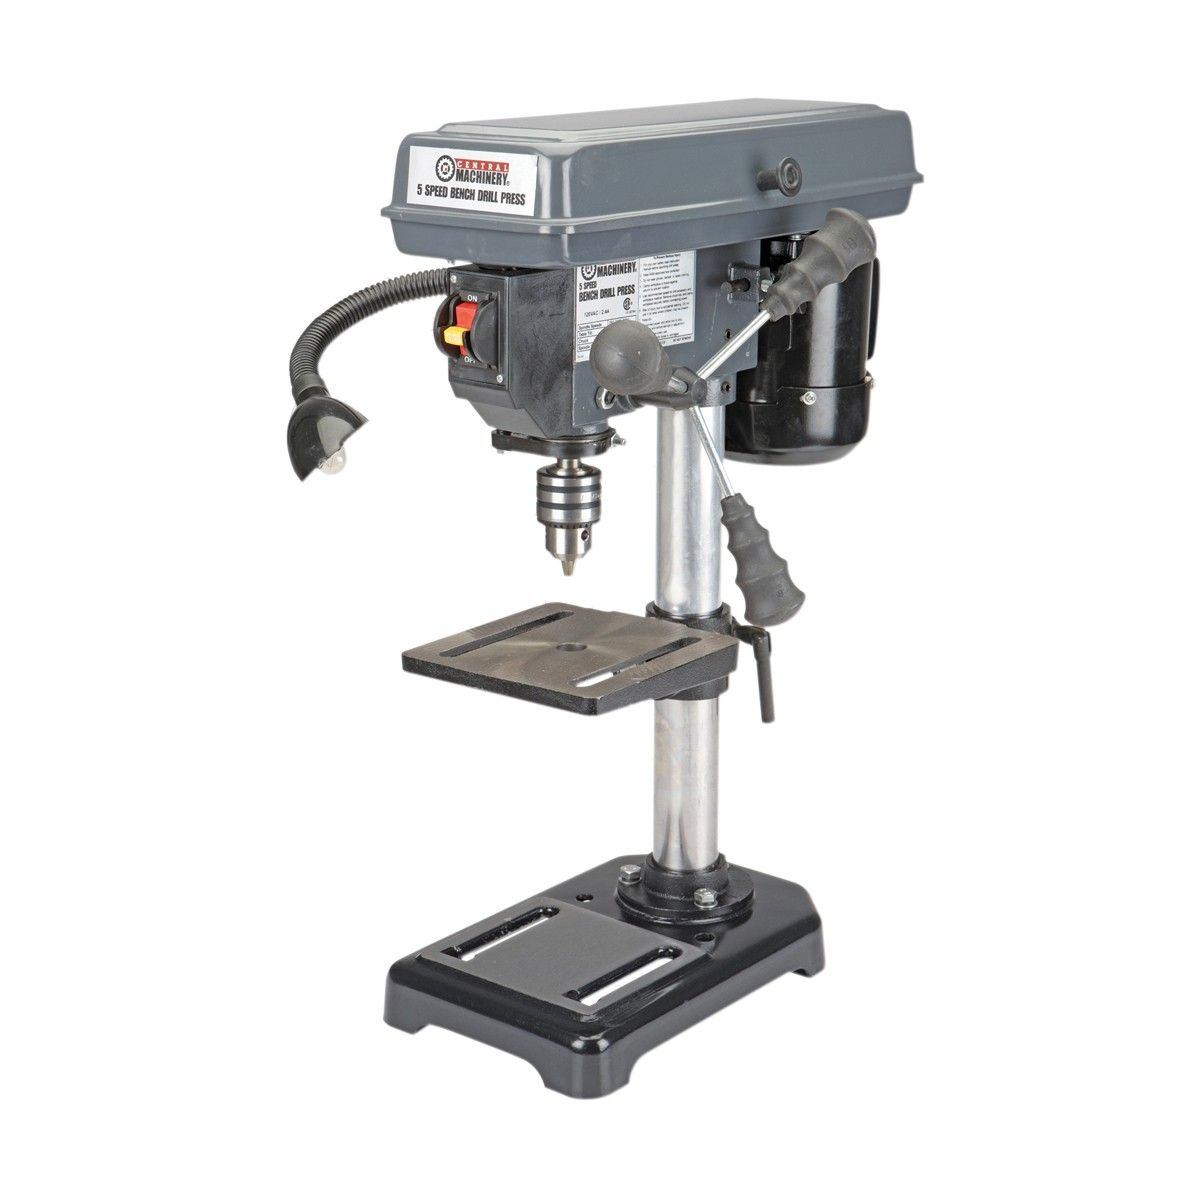 Benchtop Drill Press Pretty Damn Cheap Too And Harbor Freight